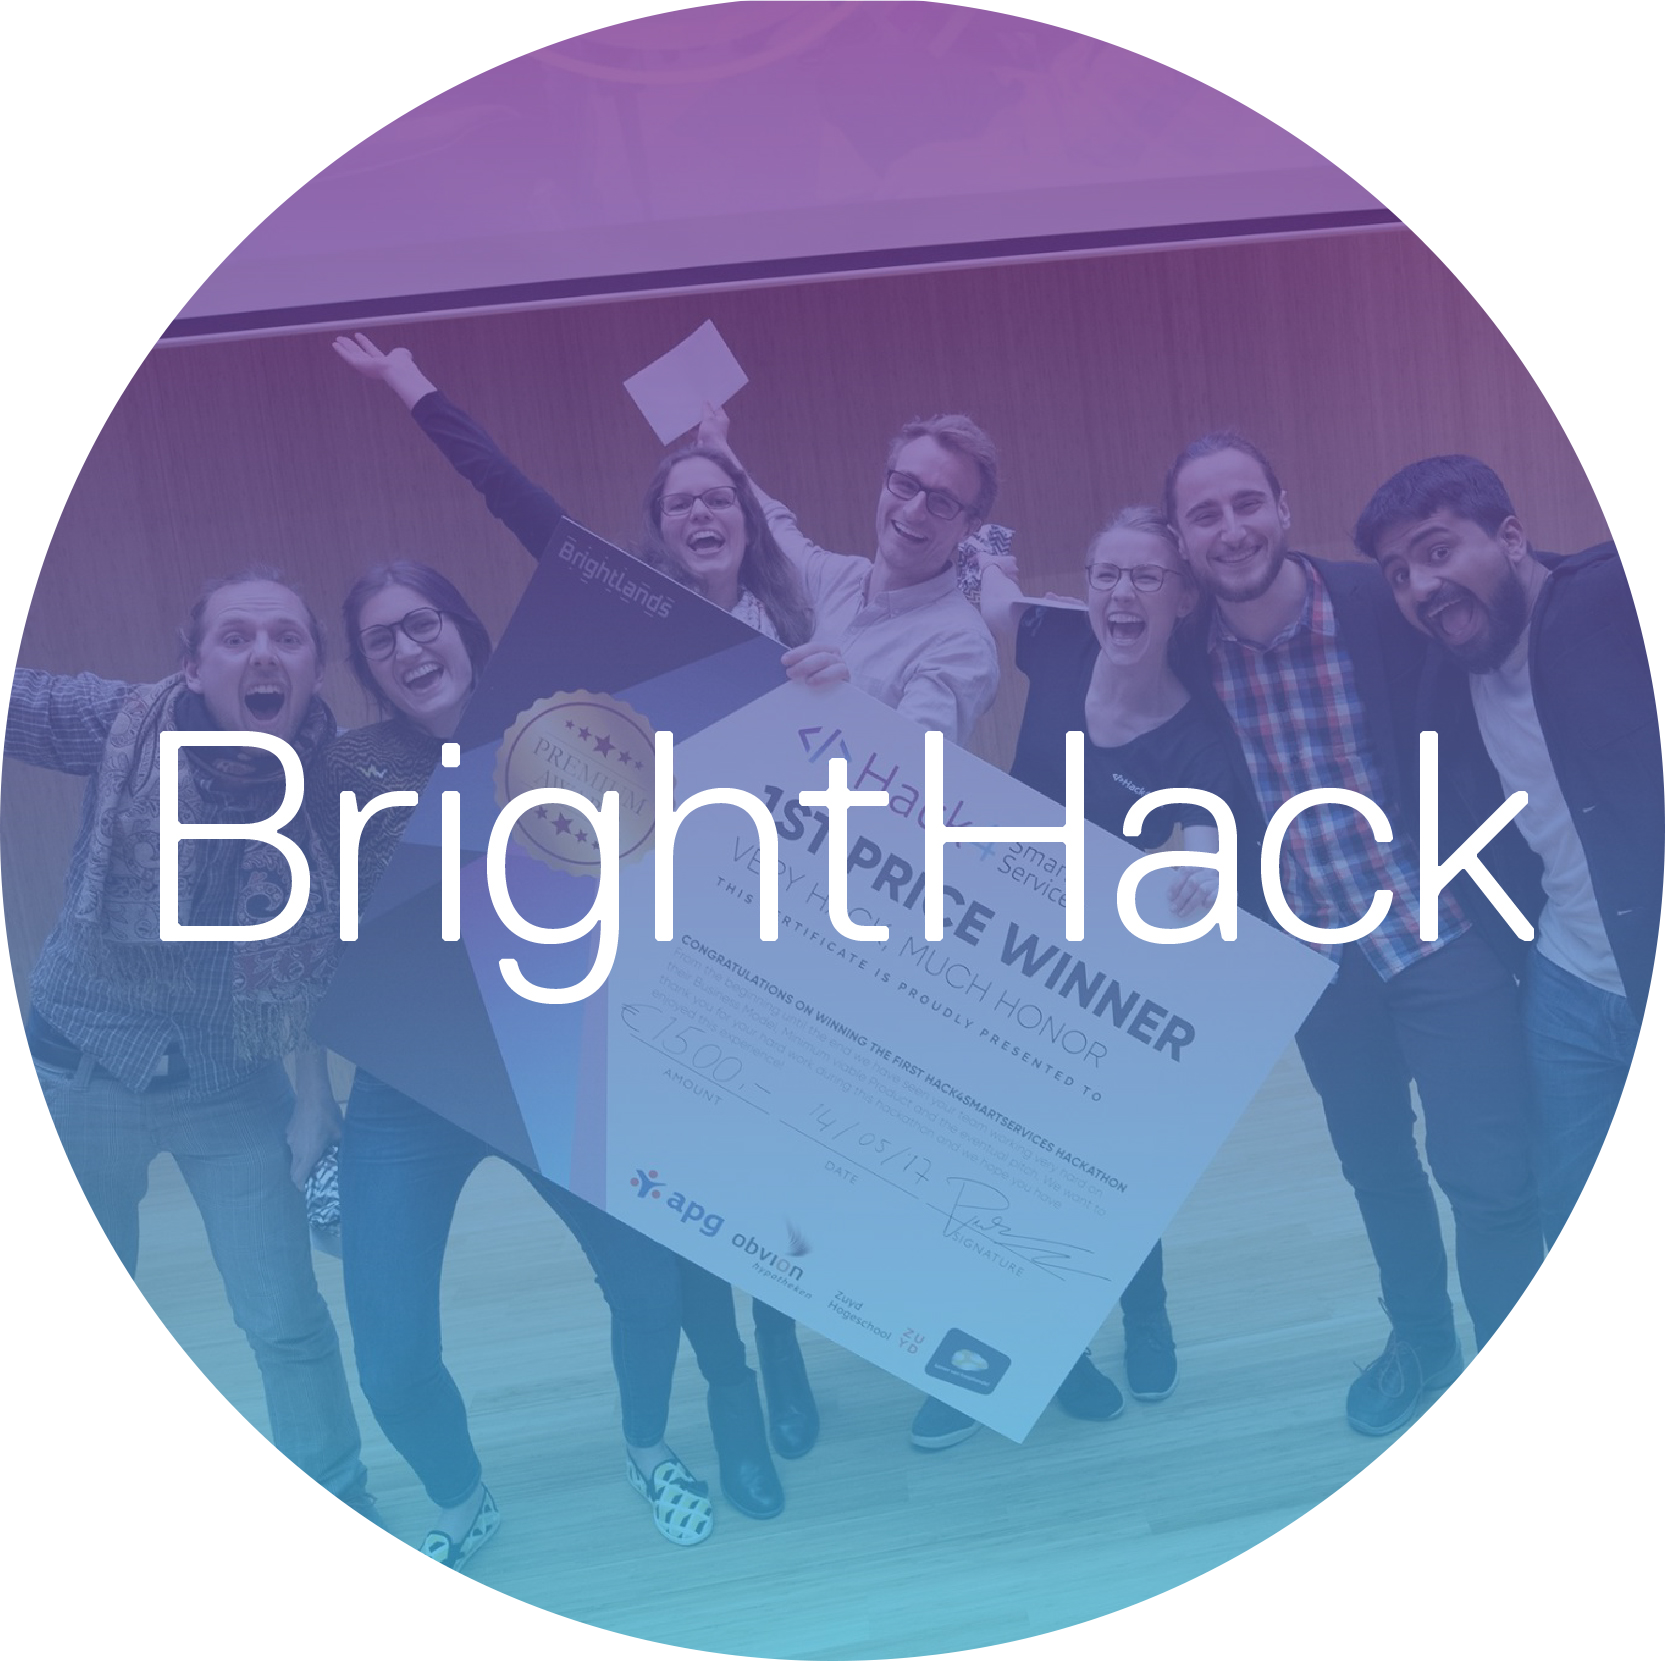 brighthack rond